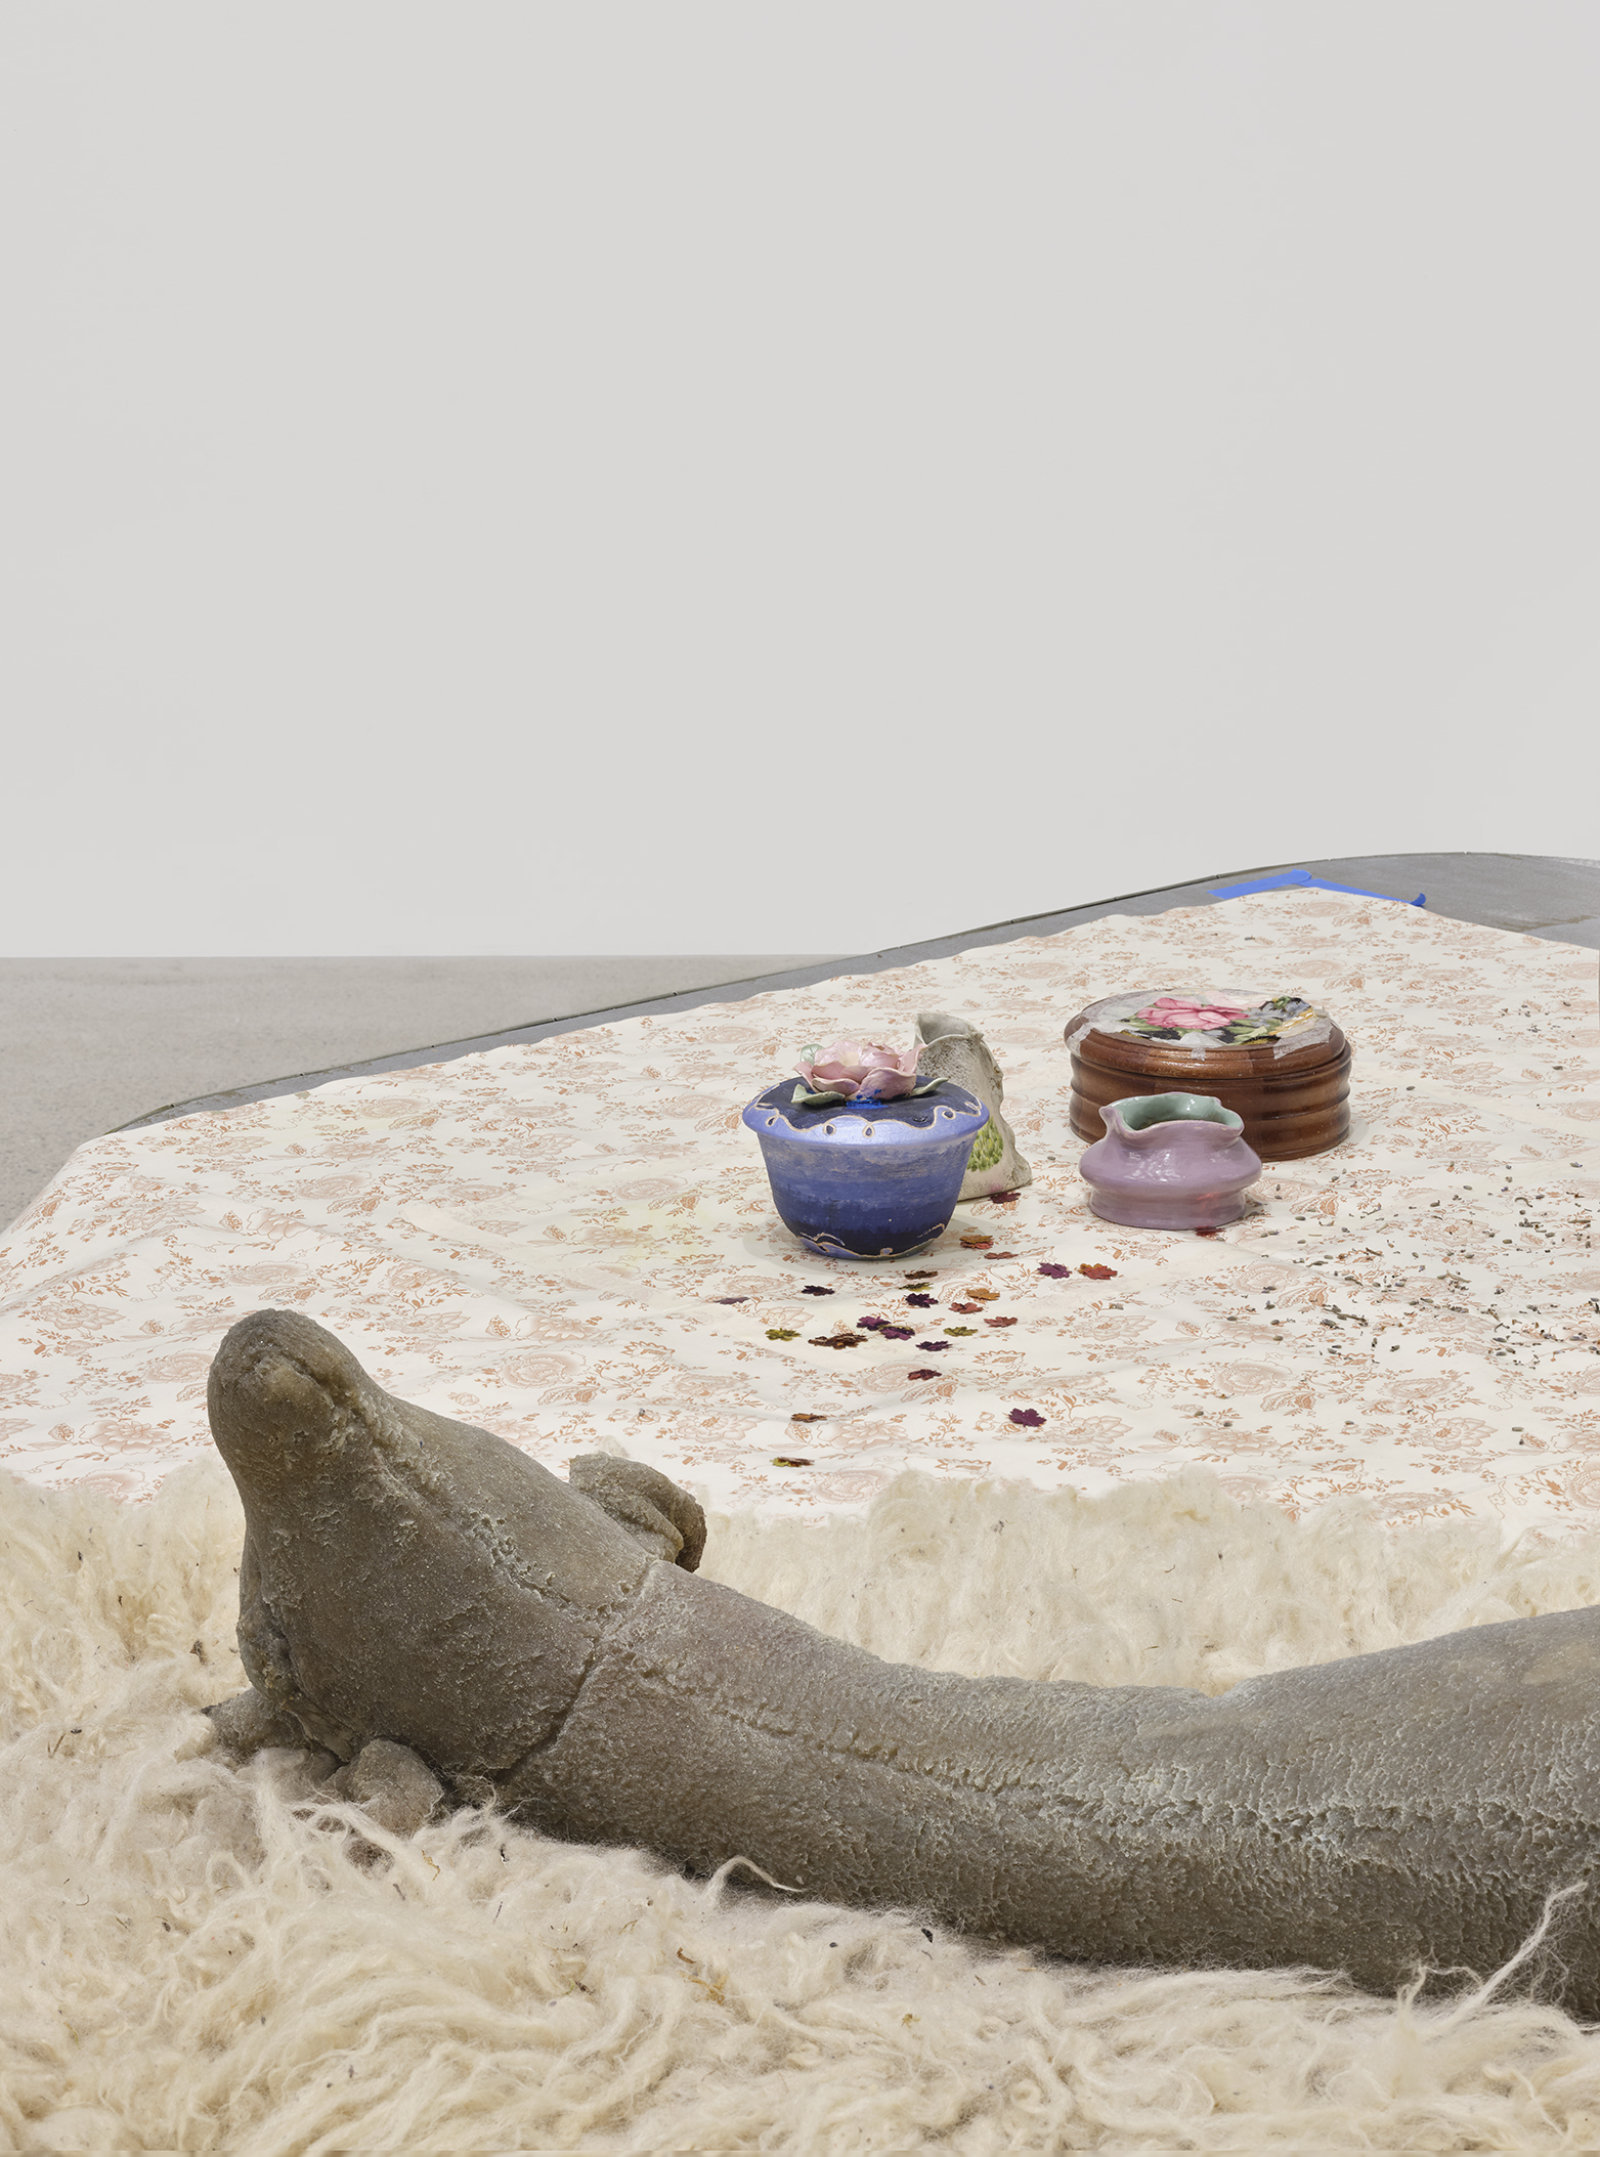 Liz Magor, Dressed (detail), 2020, painted plywood, fabric skirting, silicone rubber, hosiery, sheepskin, vinyl tablecloth, wood and ceramic crafts, plastic cup, dried lavender, packaging materials, 28 x 120 x 108 in. (71 x 305 x 274 cm) by Liz Magor